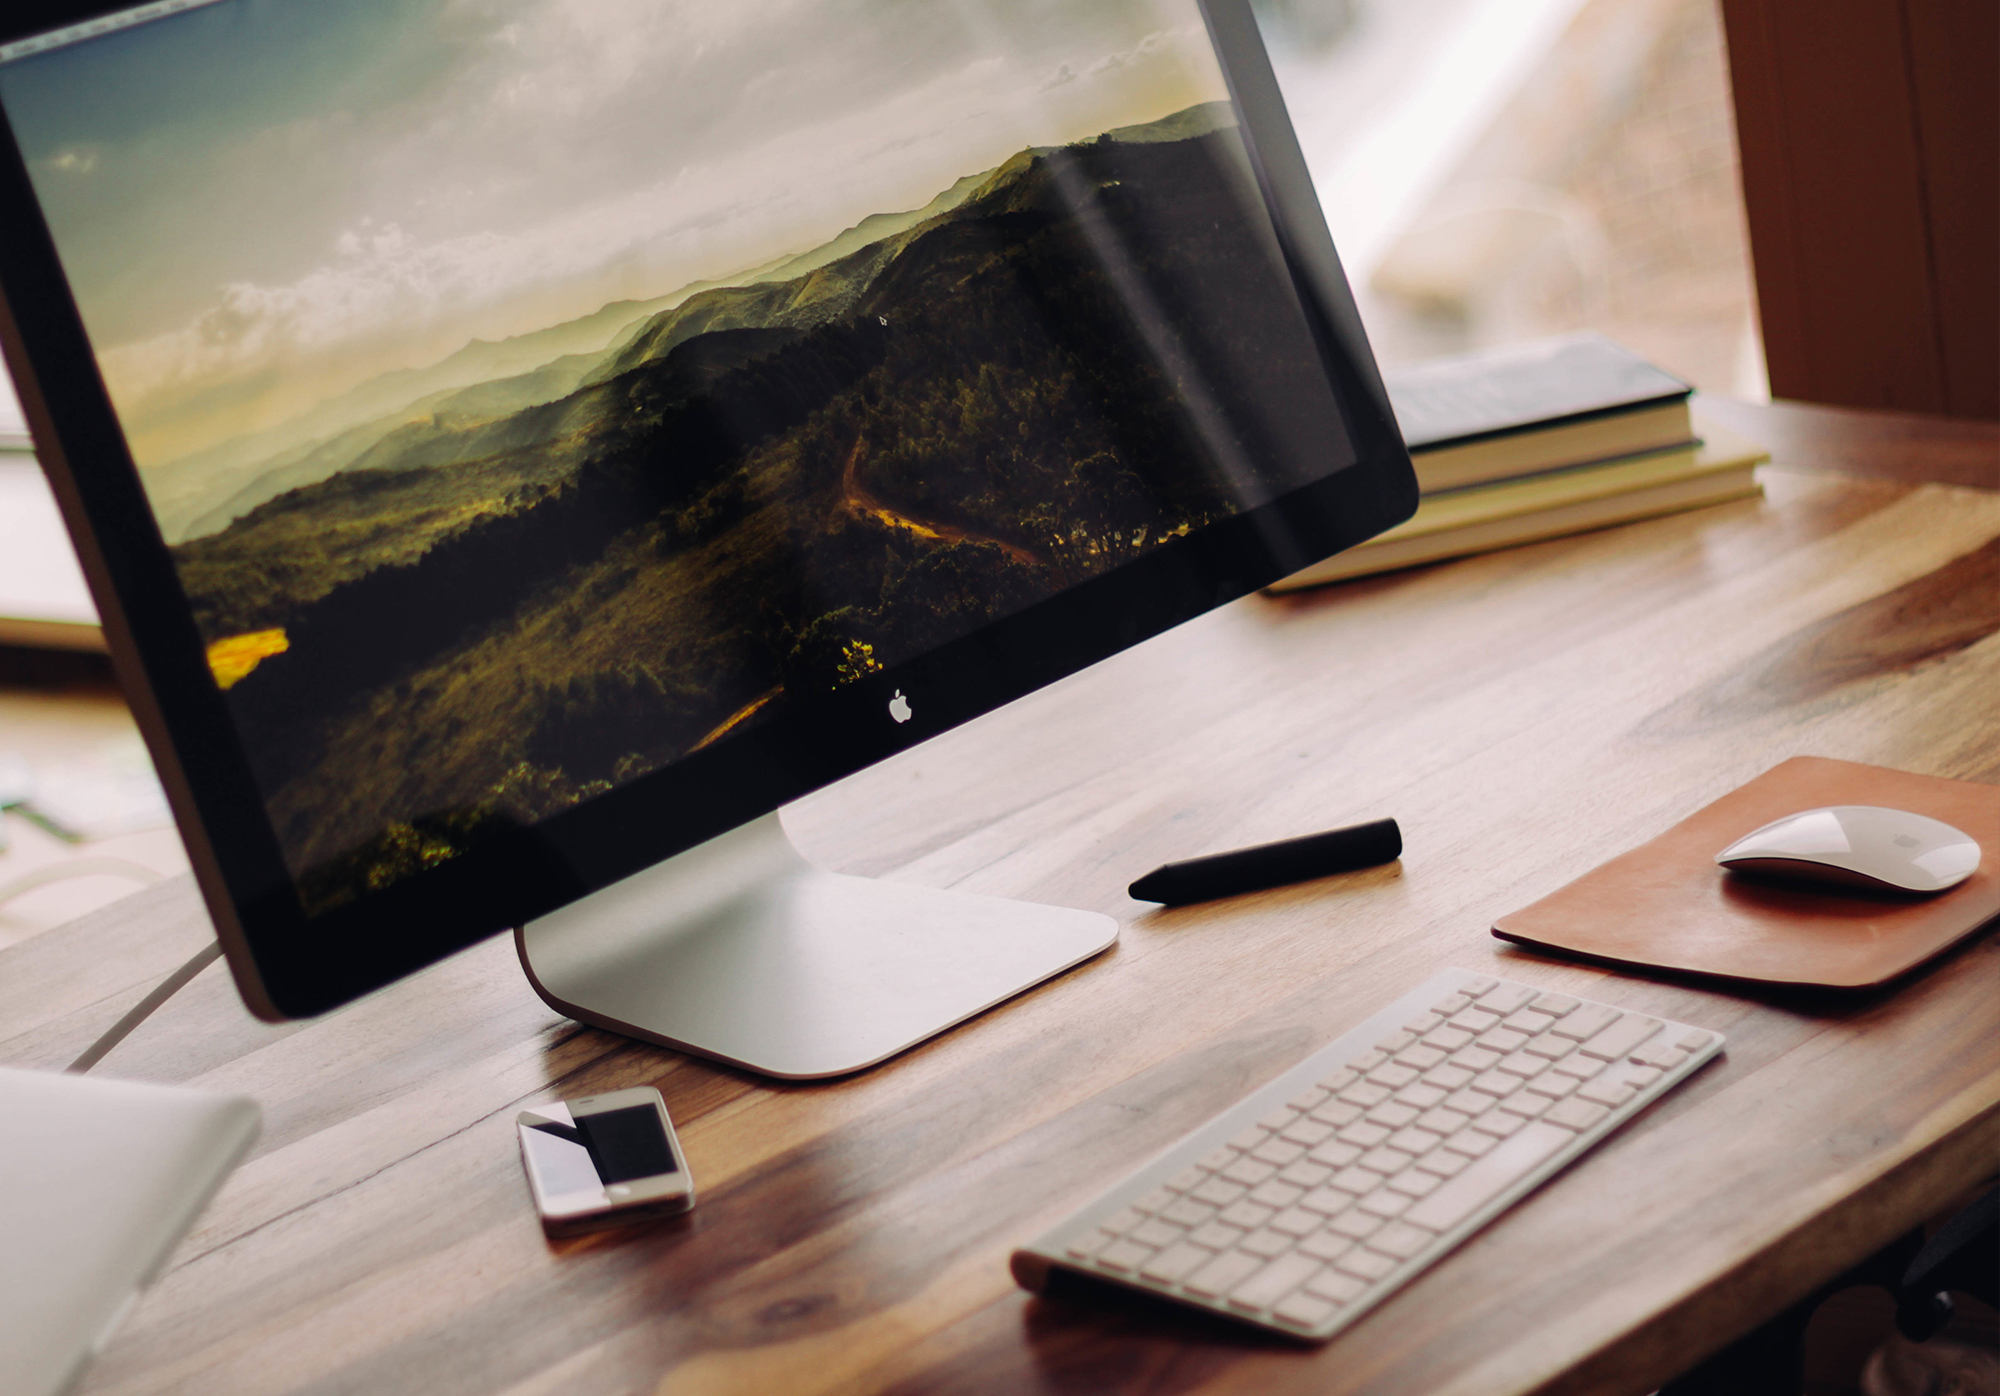 20 Steps To Maximize ProPresenter On Your Mac